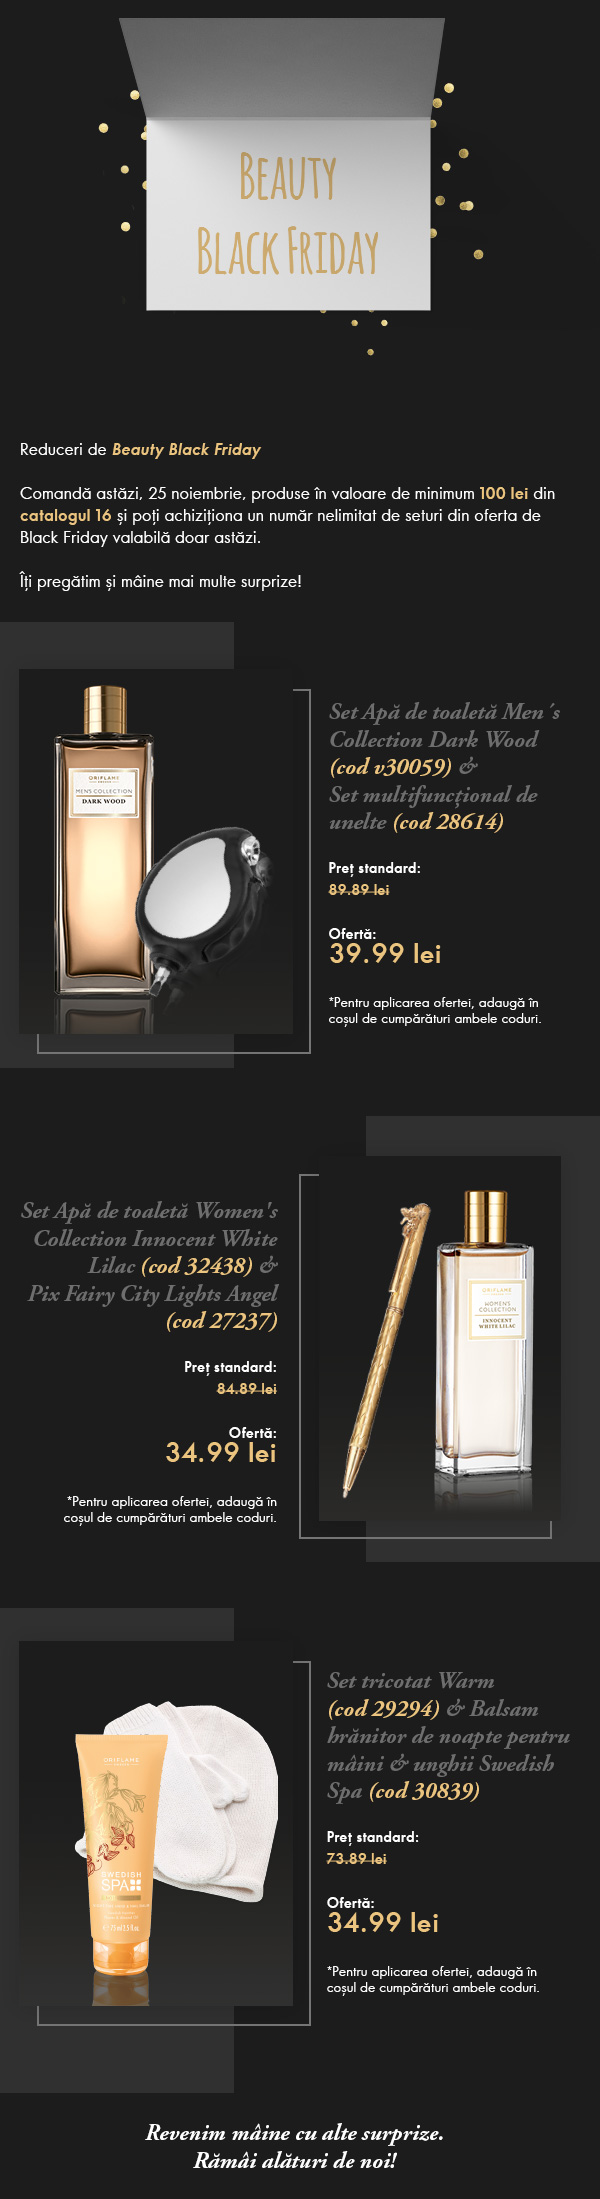 Black Friday Oriflame 2016